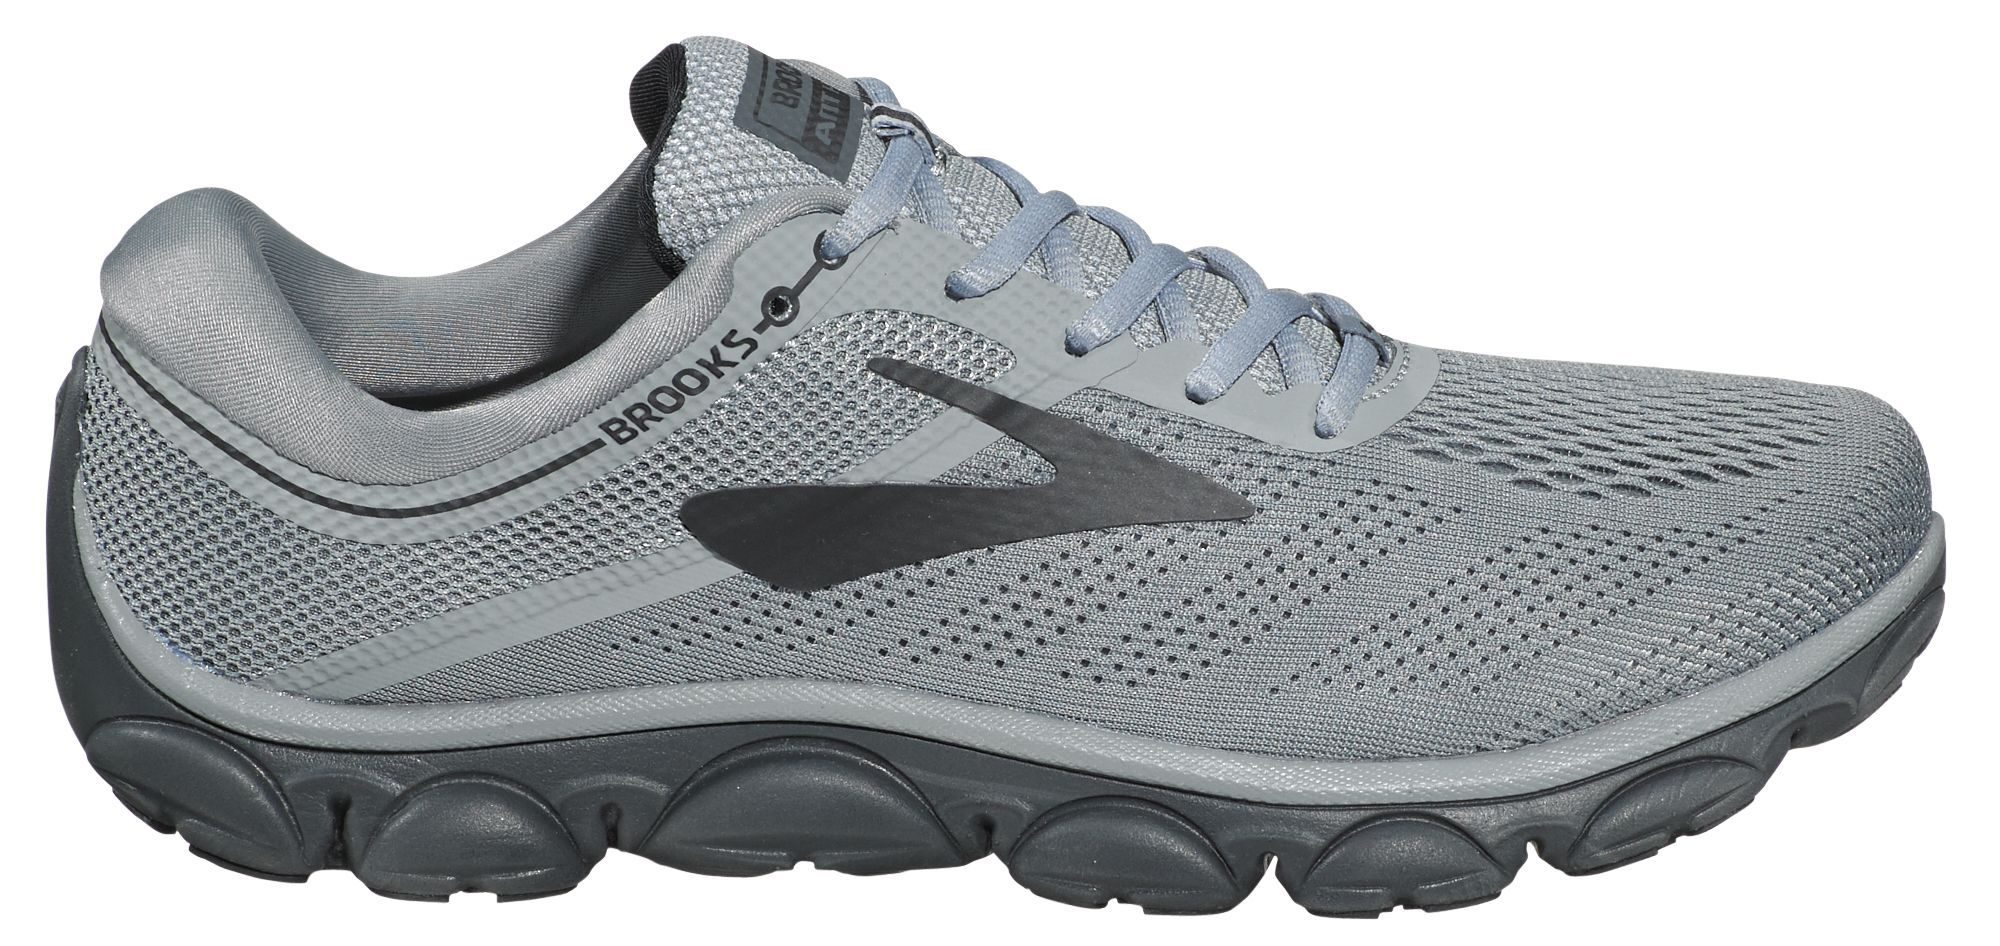 info for 98d9a 60bc3 Brooks Men's Anthem Running Shoes | Products in 2019 ...